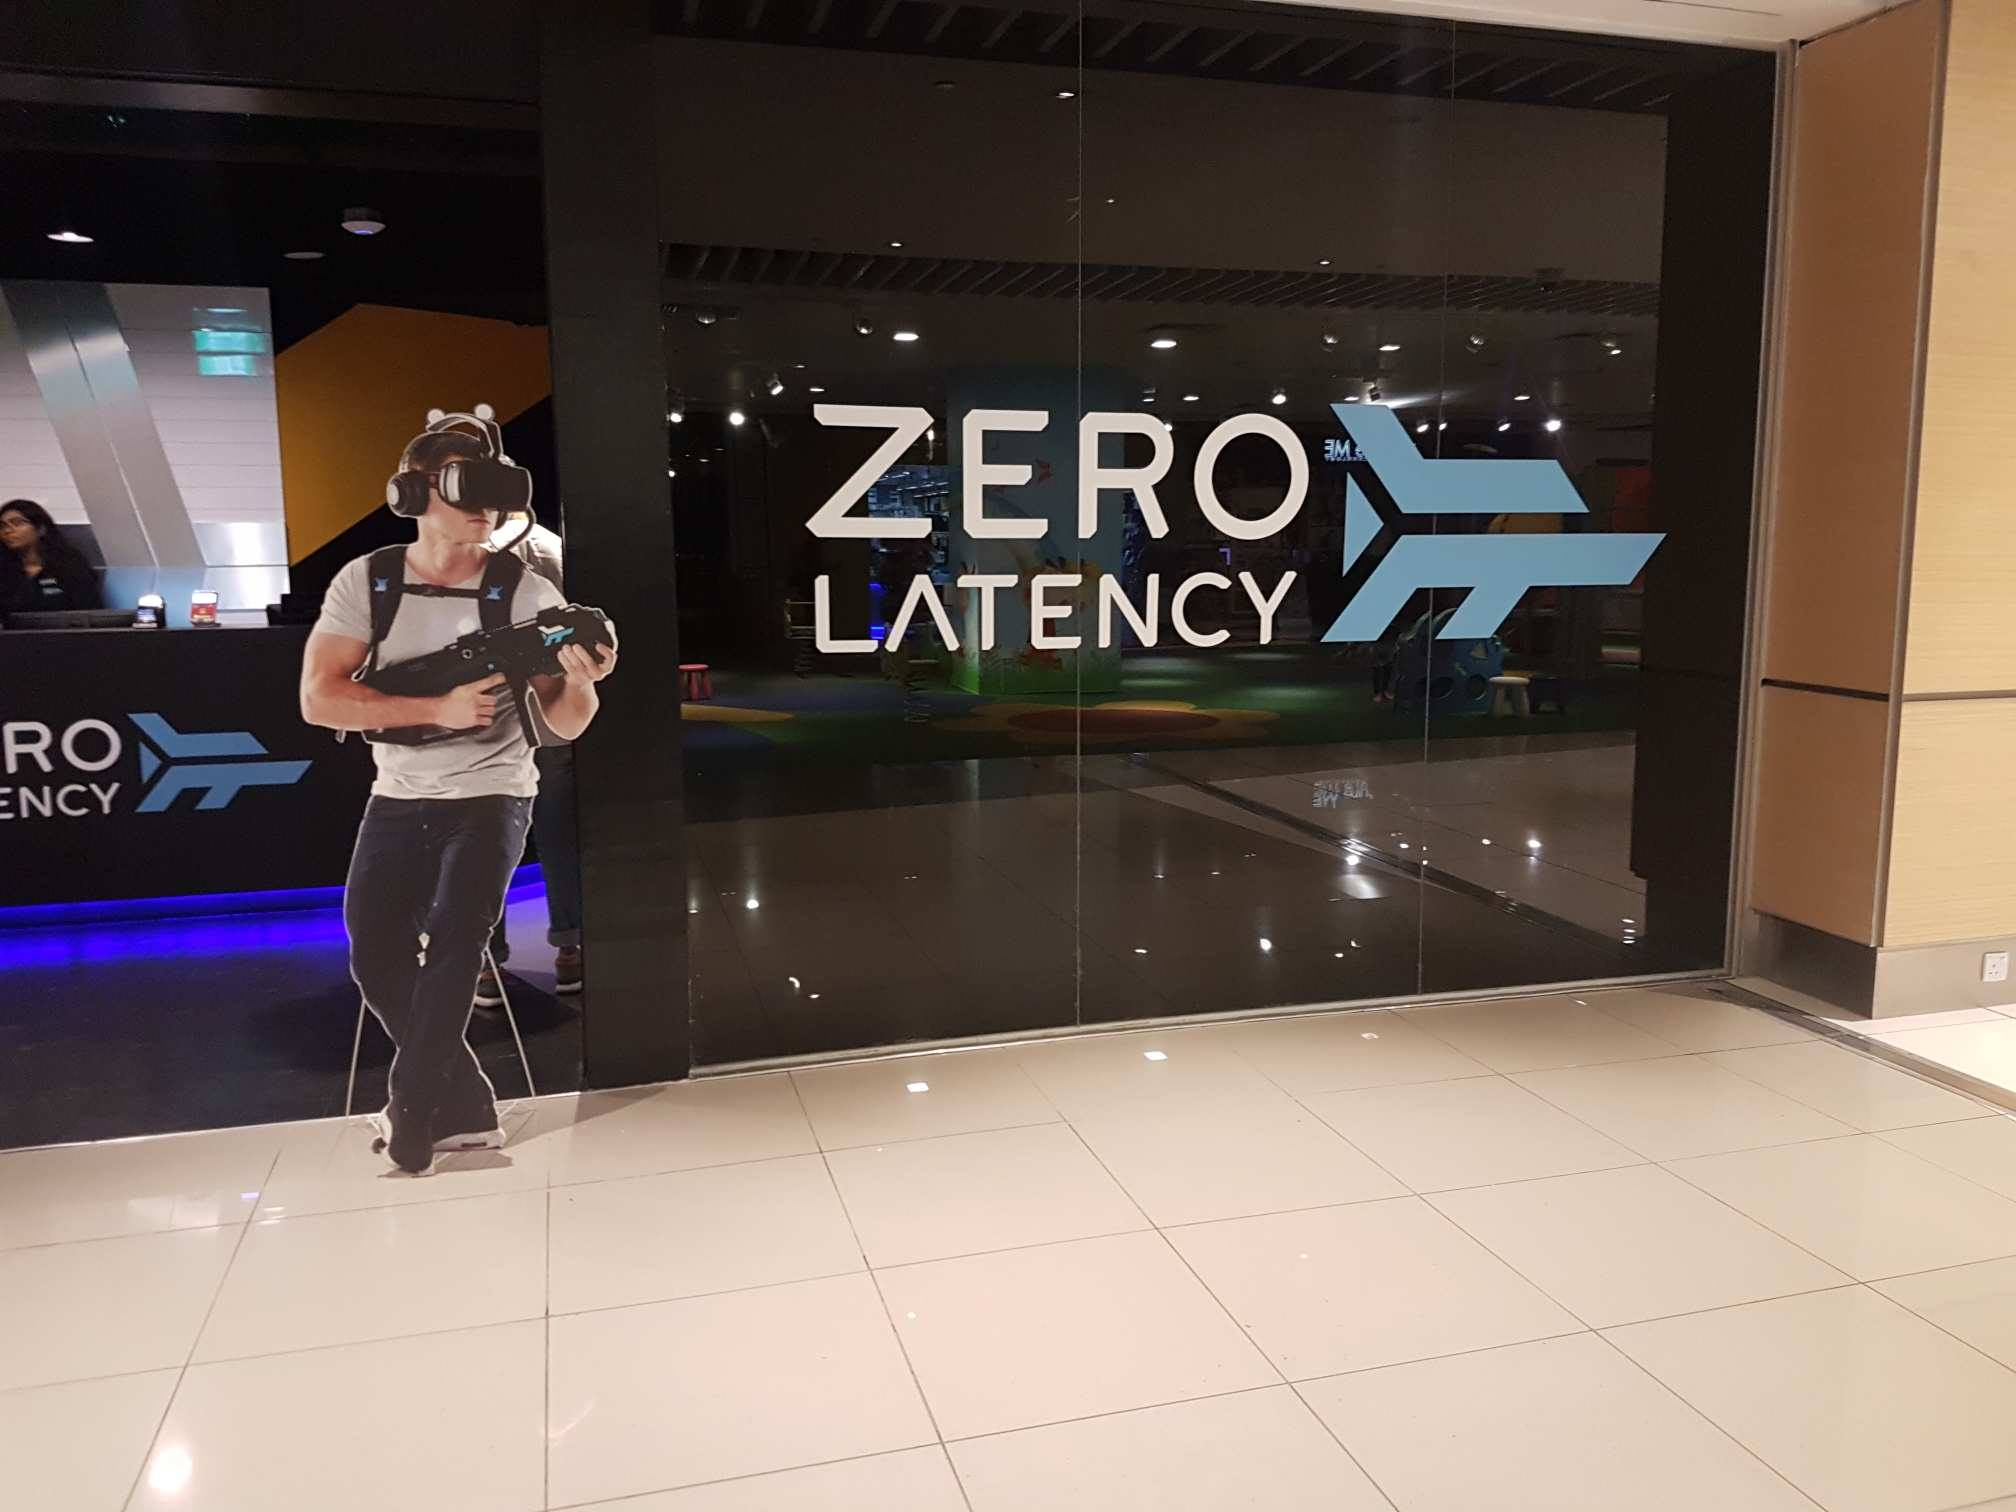 Zero Latency Singapore Review: Free Roam Multiplayer VR Experience